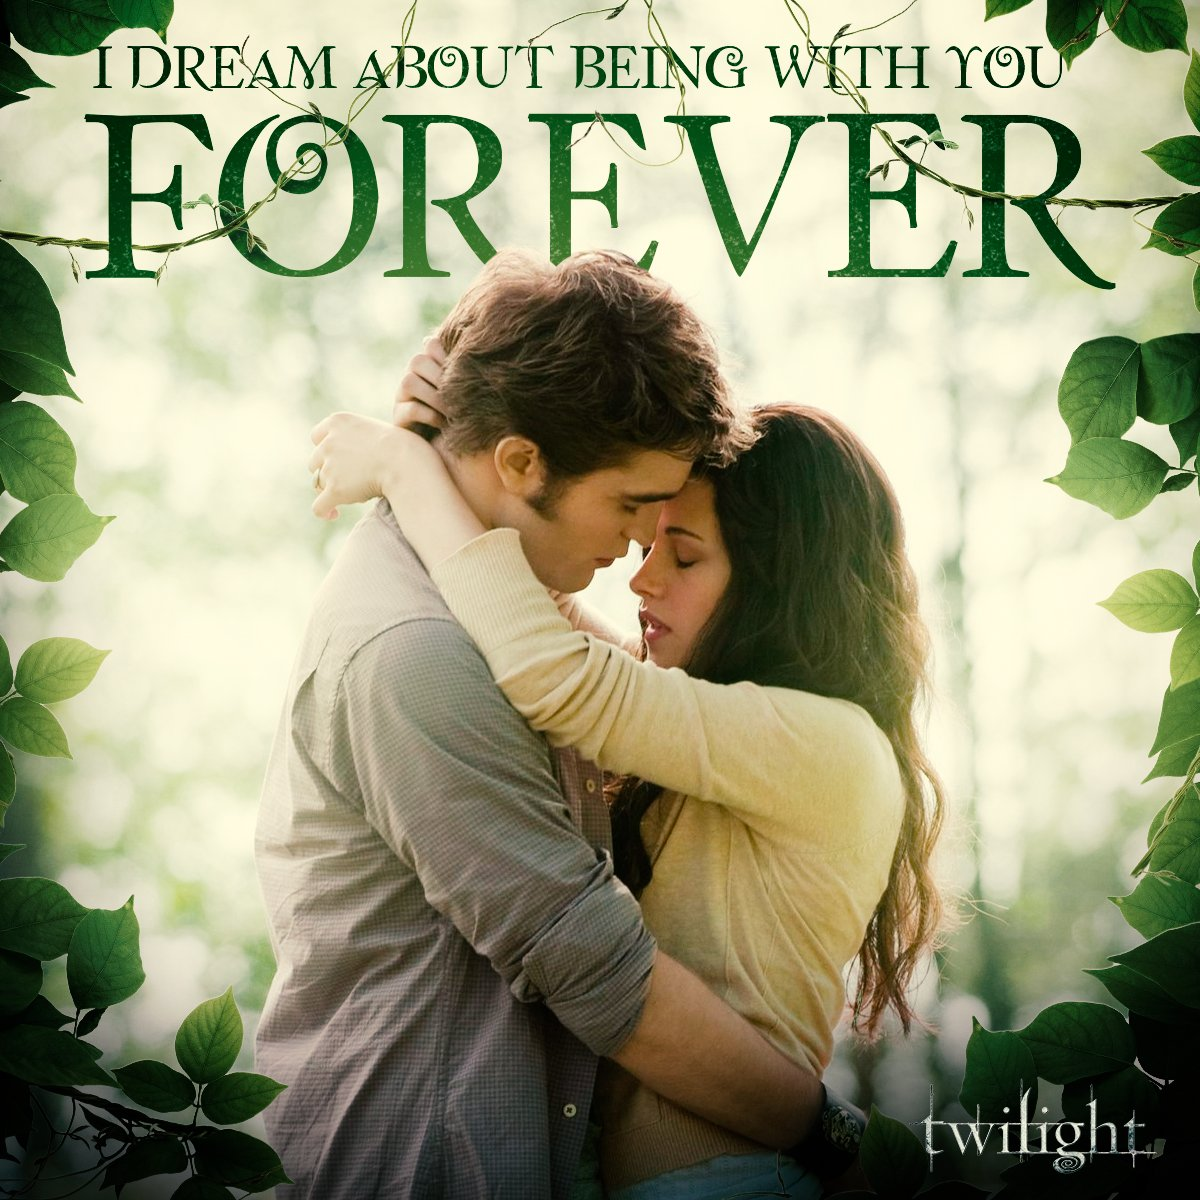 i would personally like to be included in that forever pls and thank u #Twilight